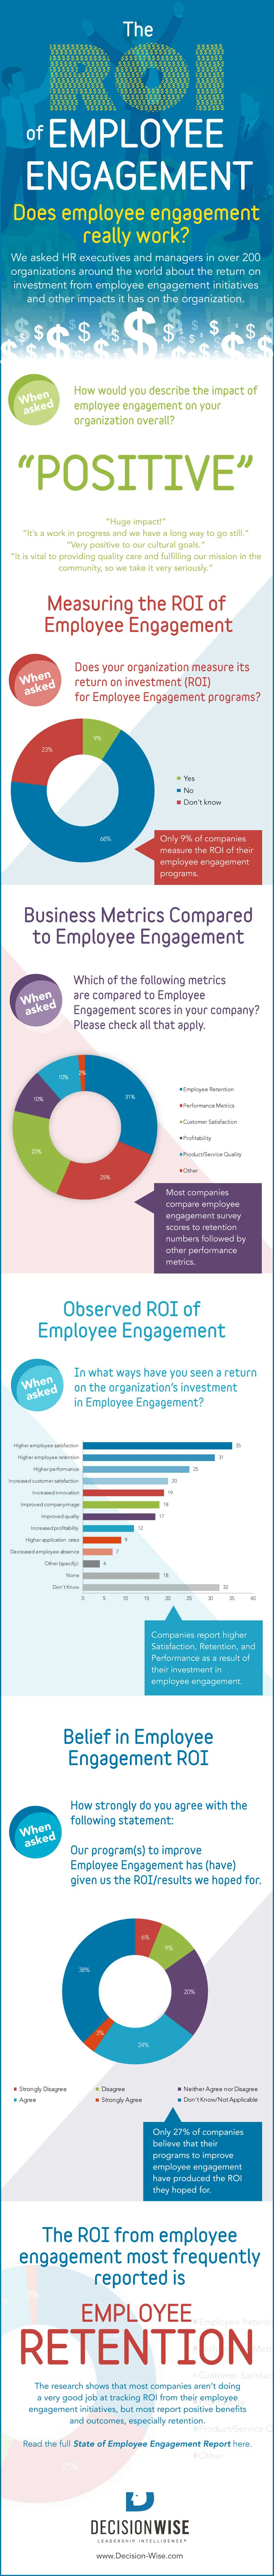 Infographic-ROI-of-Employee-Engagement